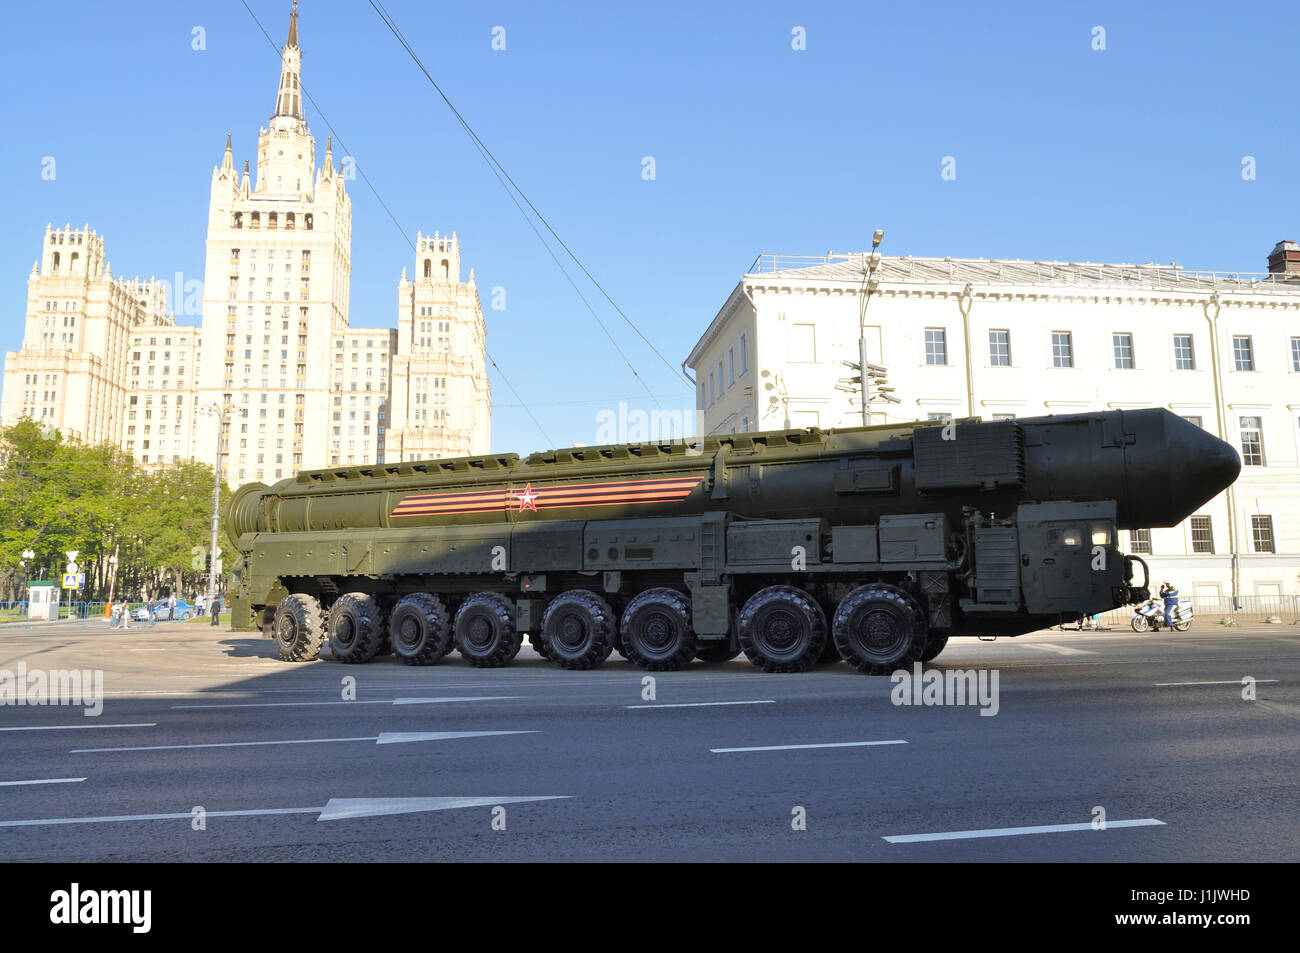 An RS-24 Yars mobile intercontinental ballistic missile system, going to Moscow's Red Square to Victory Day - Stock Image